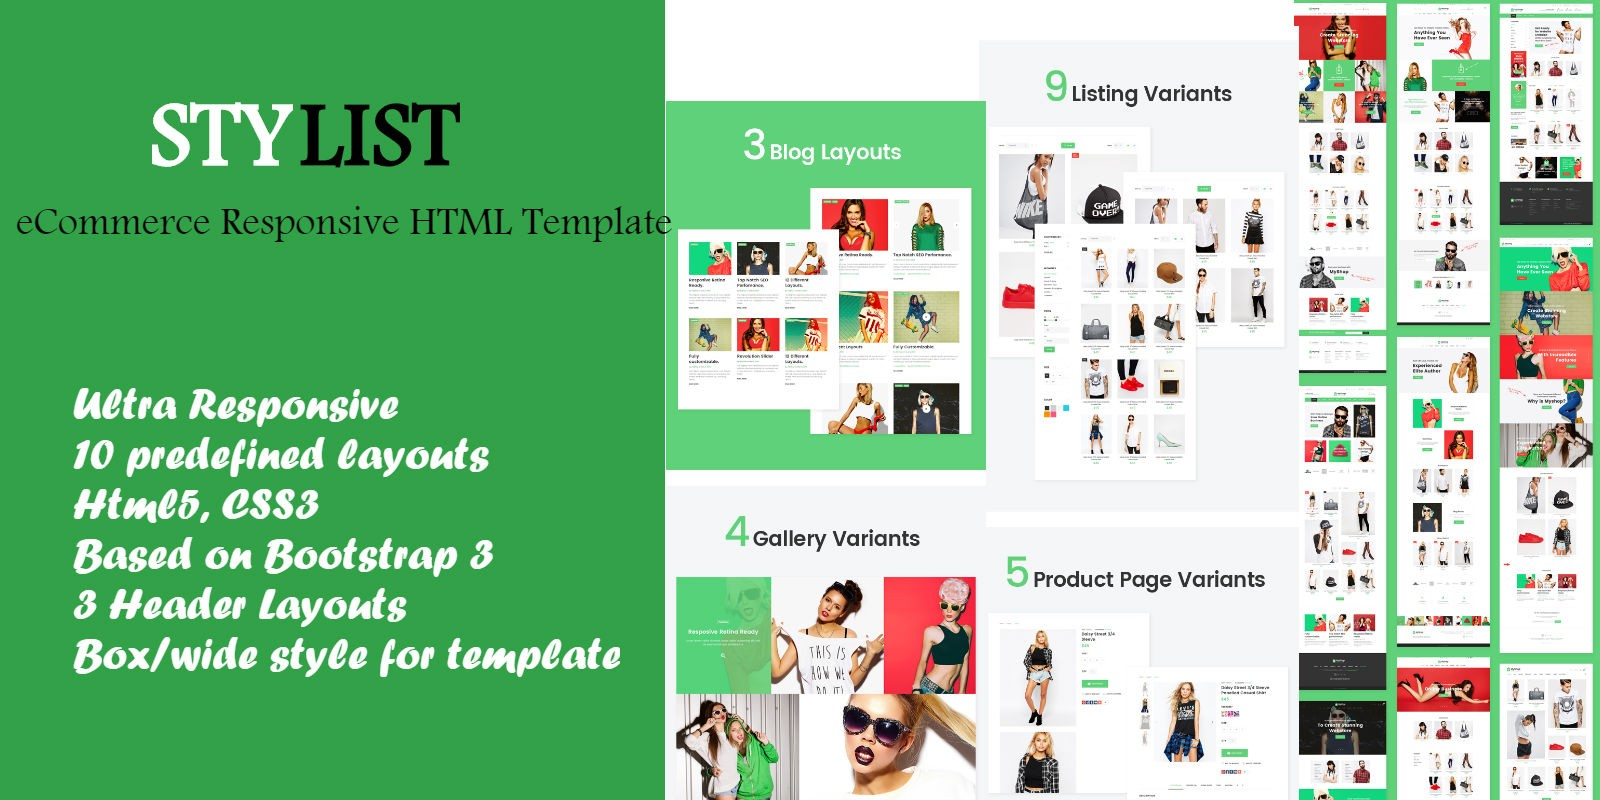 Stylist - eCommerce HTML Template